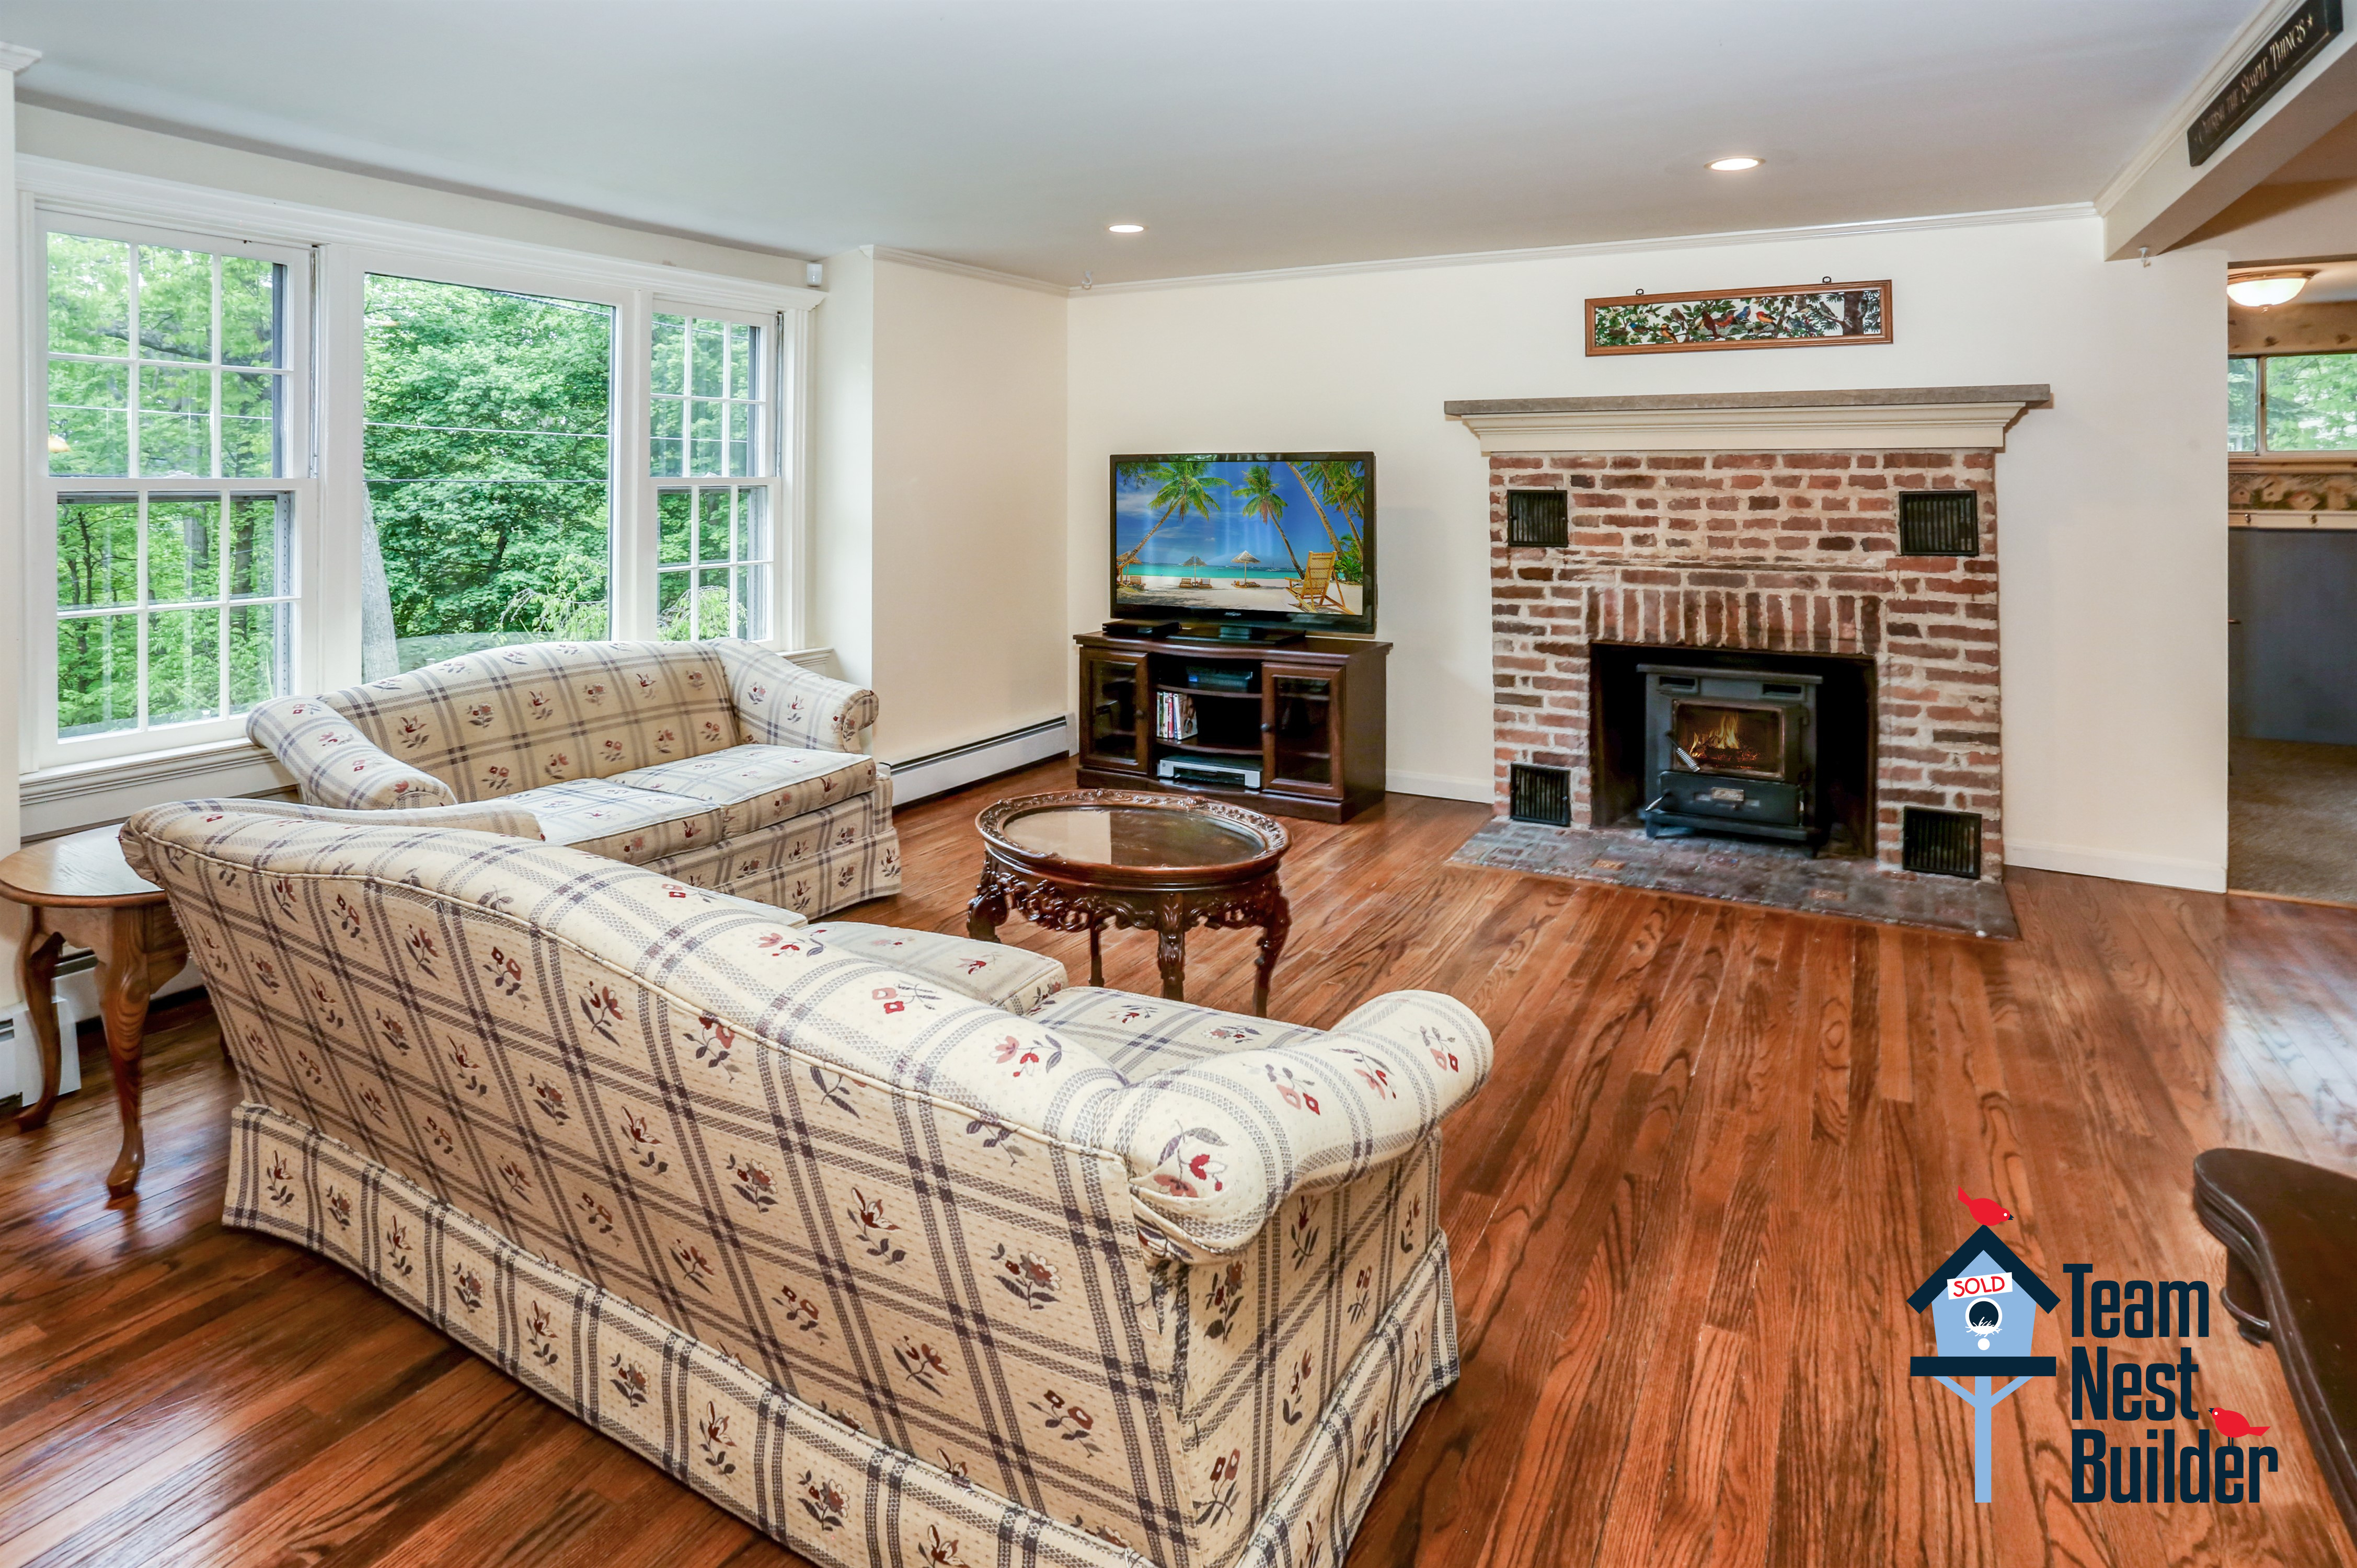 Cozy up in front of the living room fireplace